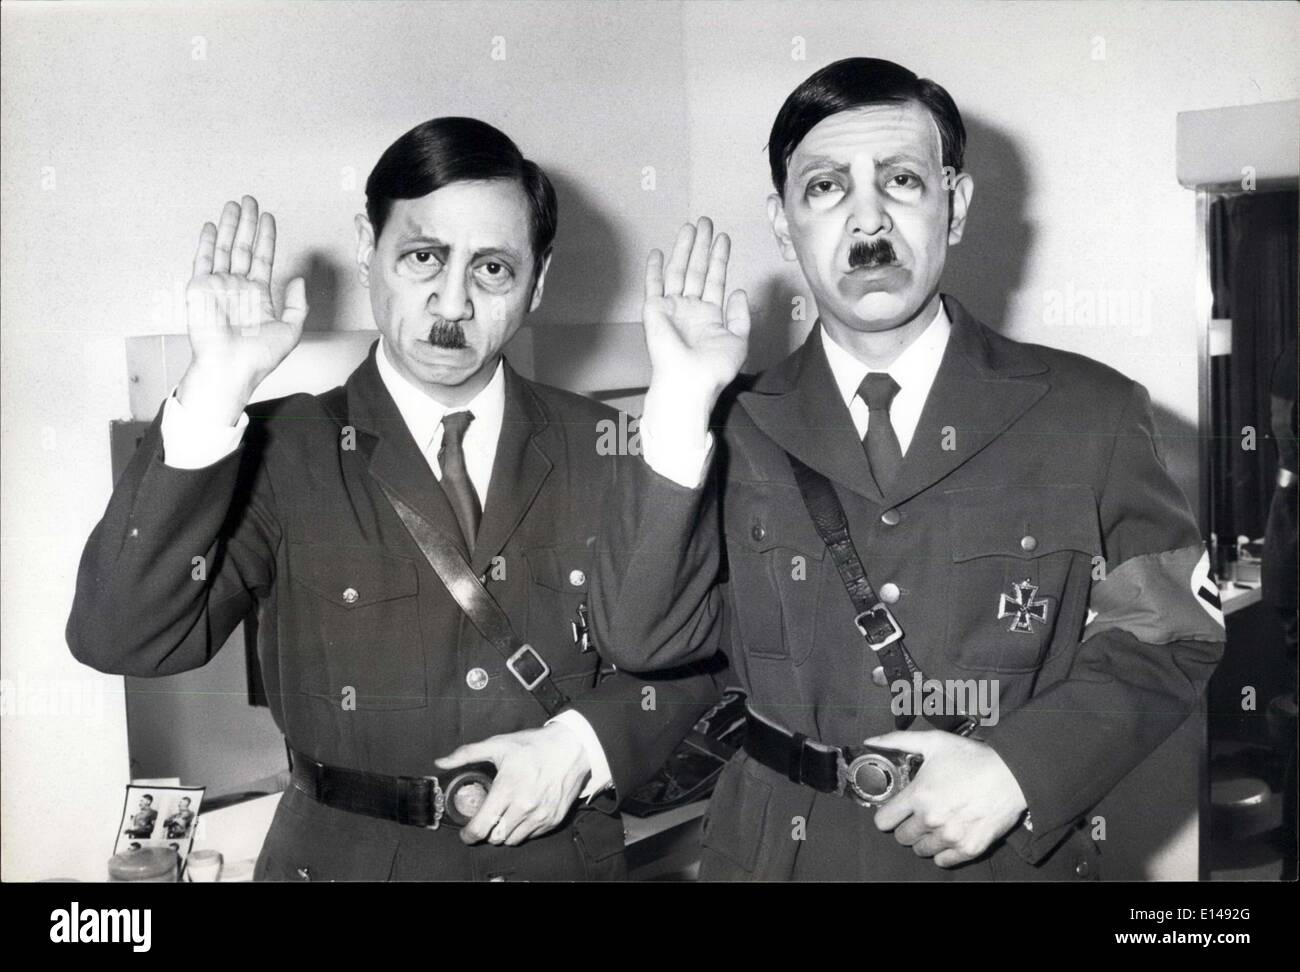 Apr. 17, 2012 - Hitler - two of them in Tokyo: ''Hitler did not die-yet'' is the title of a play by Japanese author Tsuneari Fukuda, being performed at the Asahi Seimei Hall in Shinjuku, Tokyo by the Shiki Theatrical group. In the play, two Hitler's appear each claiming ''I am the real Hitler, the other is my substitute''. Finally it is revealed that they are both substitutes for Hitler. The point Fukuda tries to make in the new play, is to show that hero worship by the people remains, whether the hero is real or not, and all they want is a hero of some kind - Stock Image